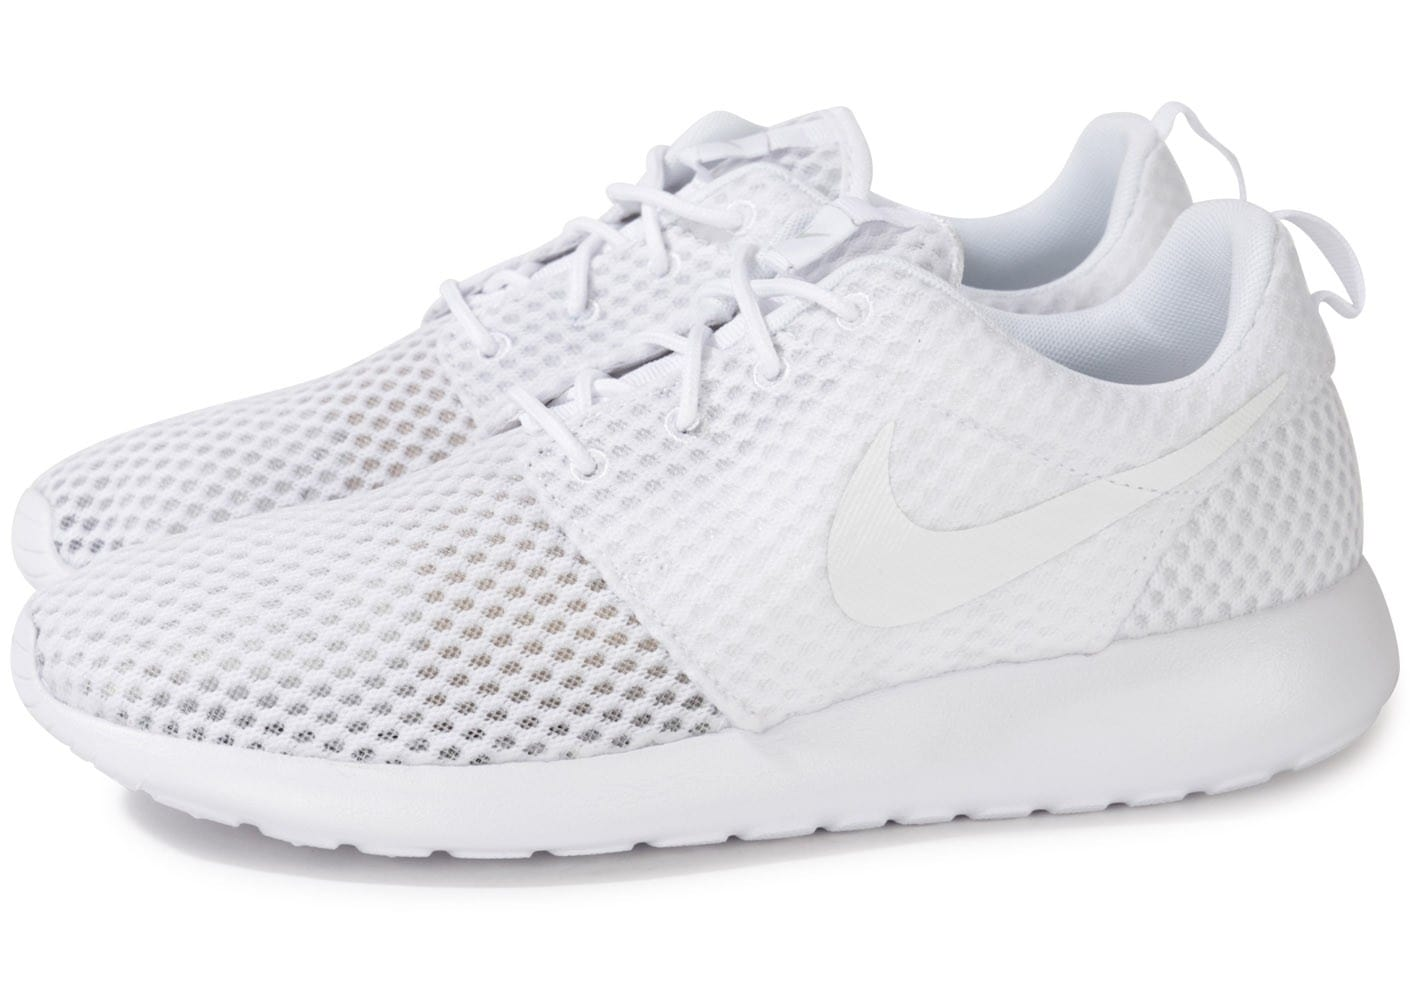 nike roshe run breeze blanche chaussures homme chausport. Black Bedroom Furniture Sets. Home Design Ideas